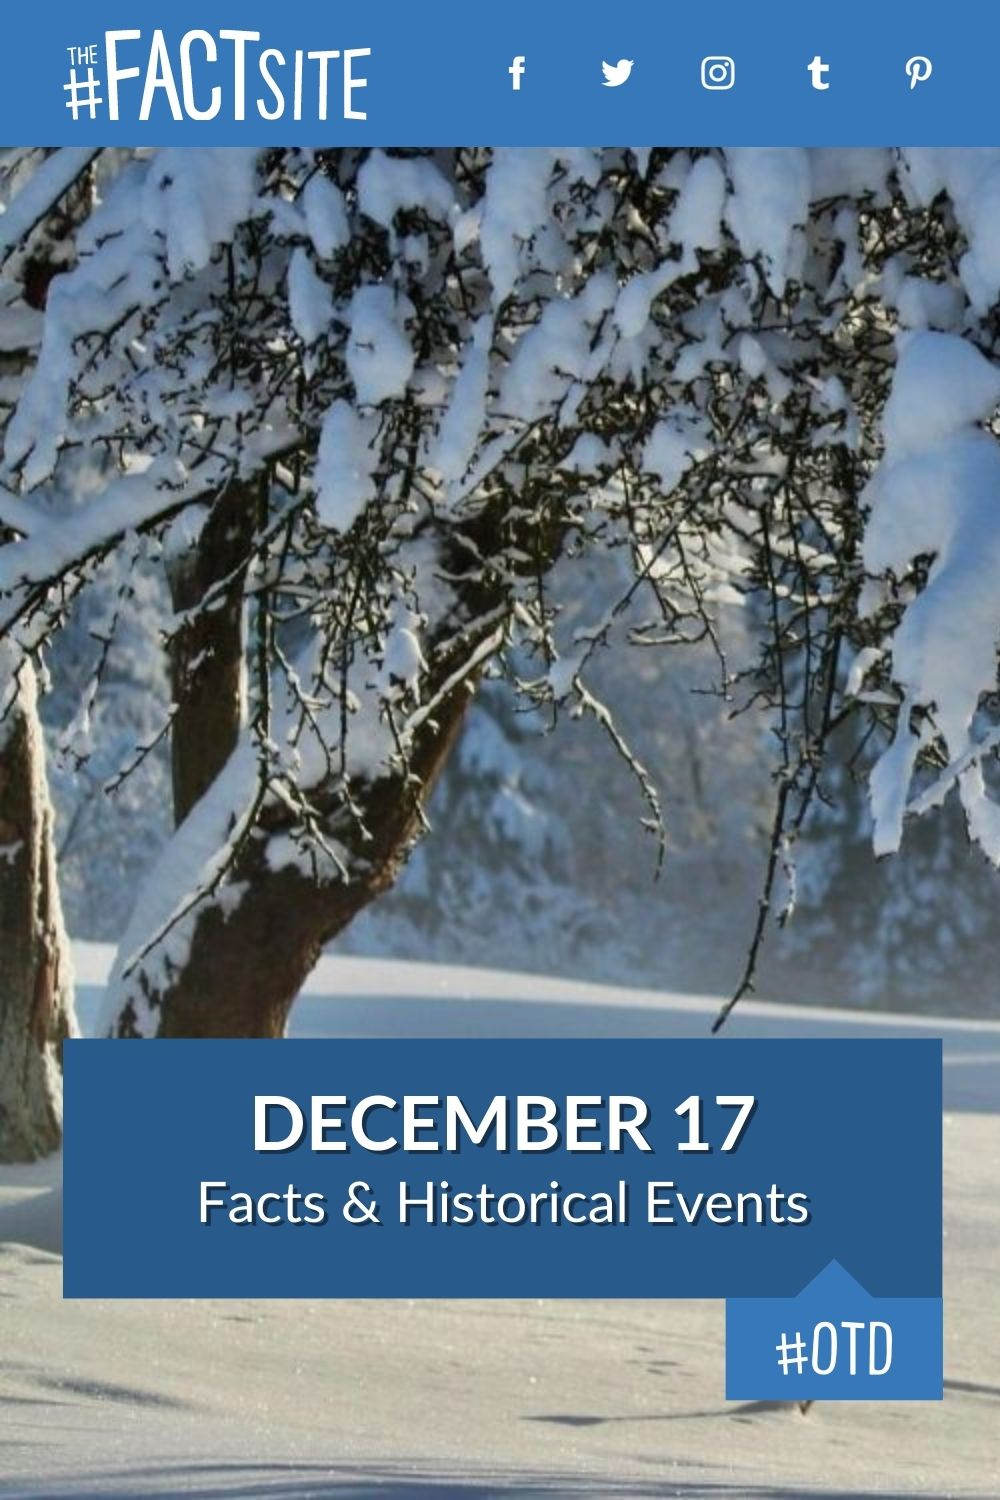 Facts & Historic Events That Happened on December 17